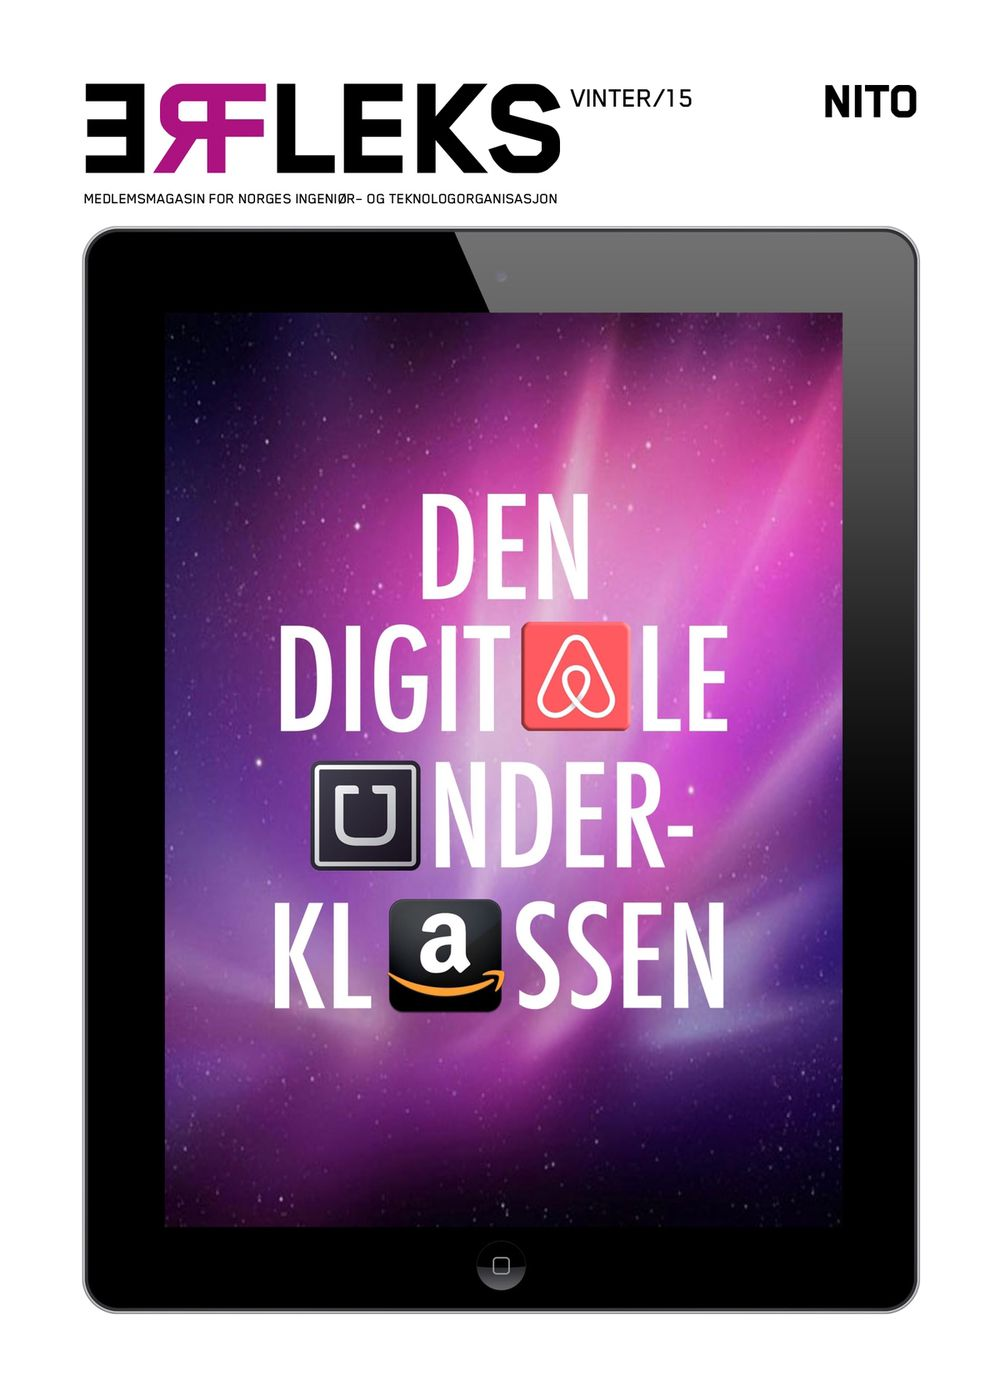 Vinter 2015: Digital klasse